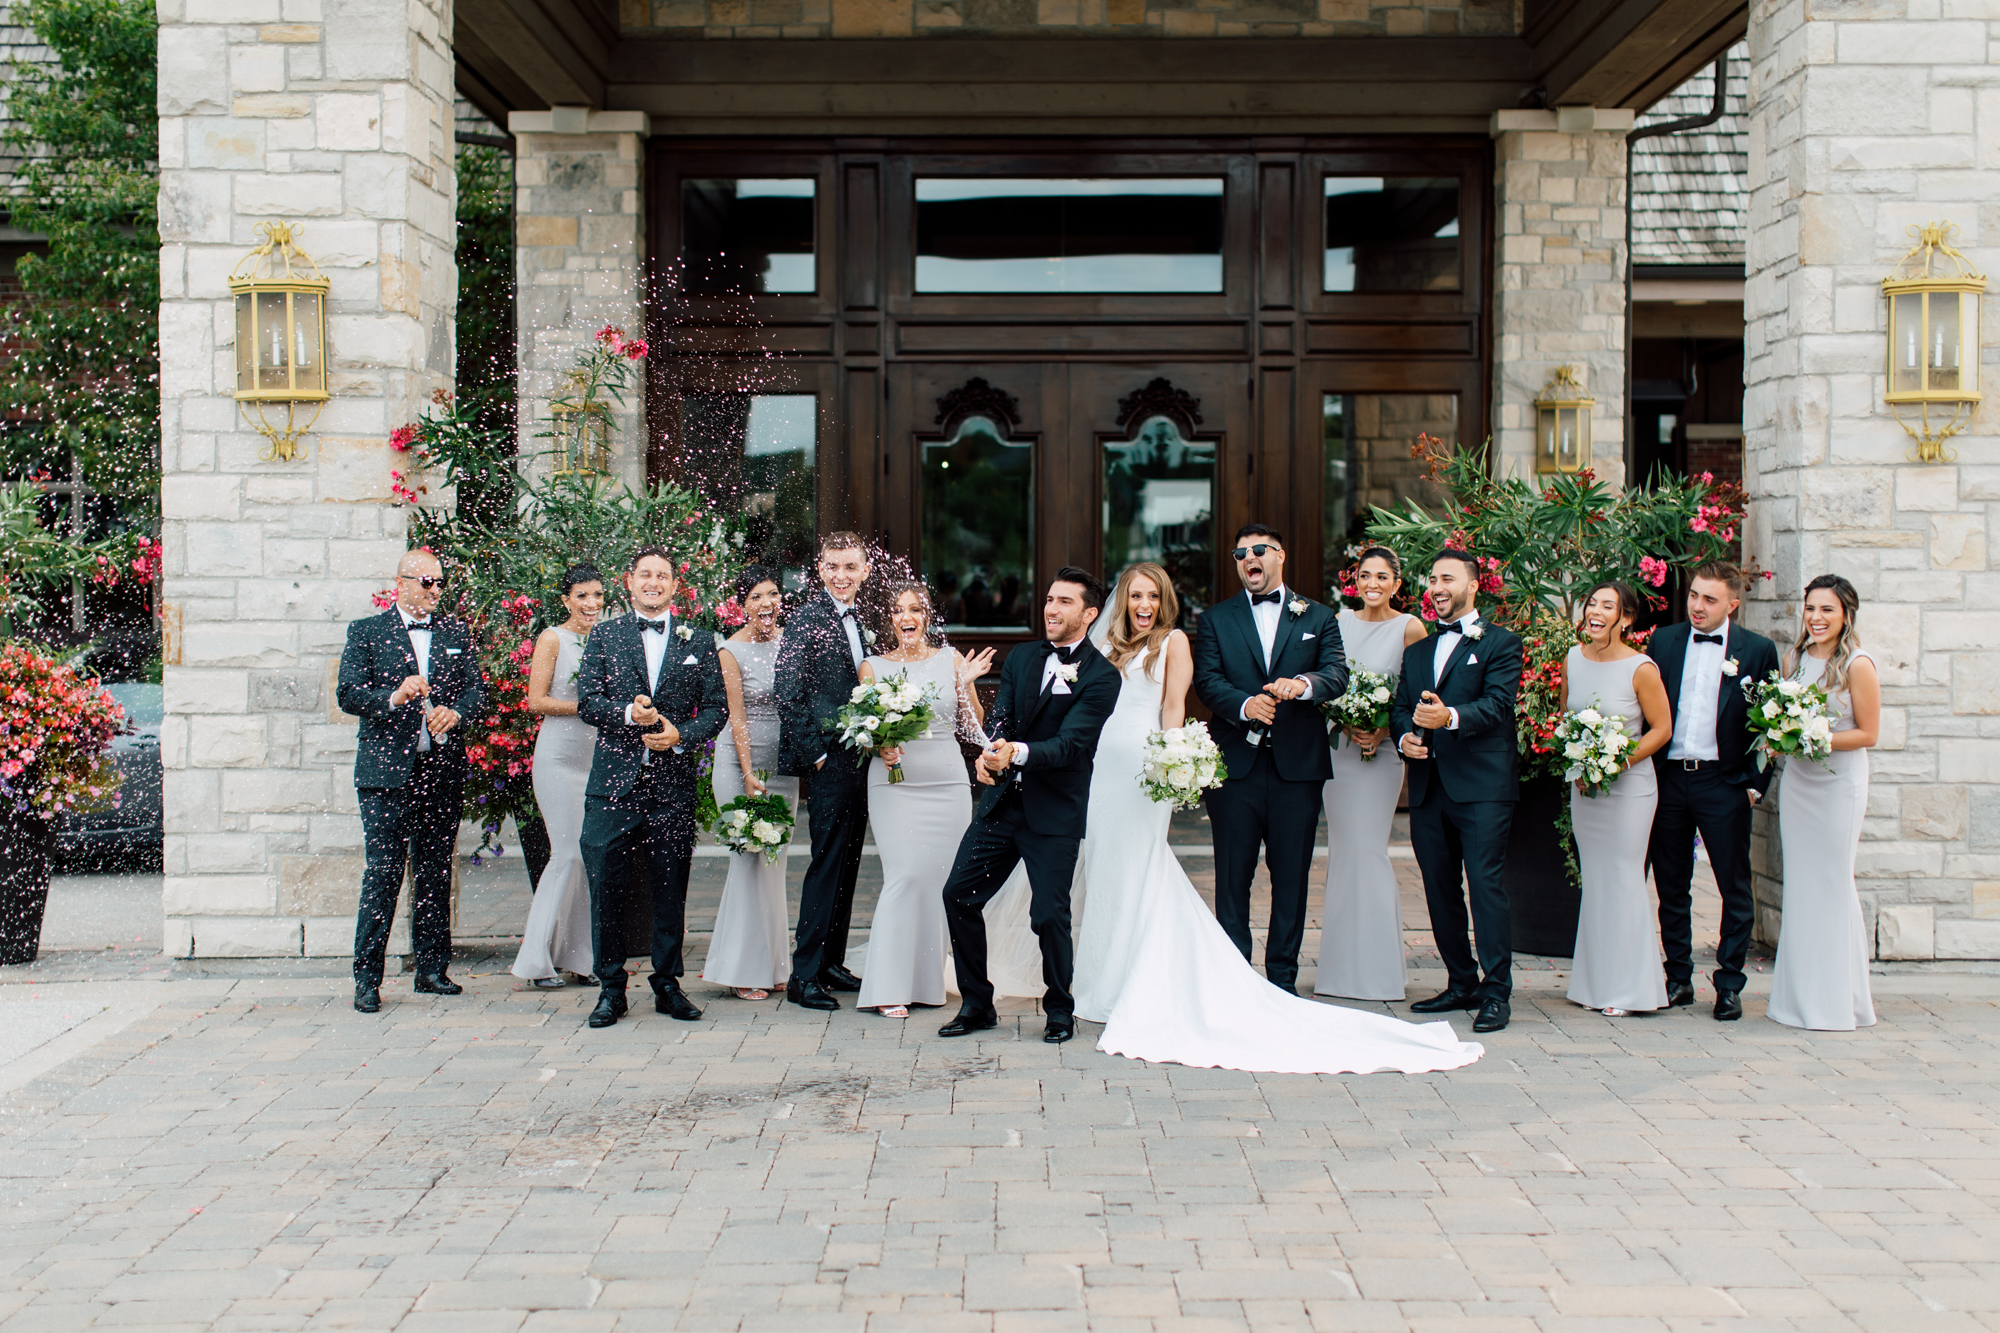 eagles nest candid bridal party